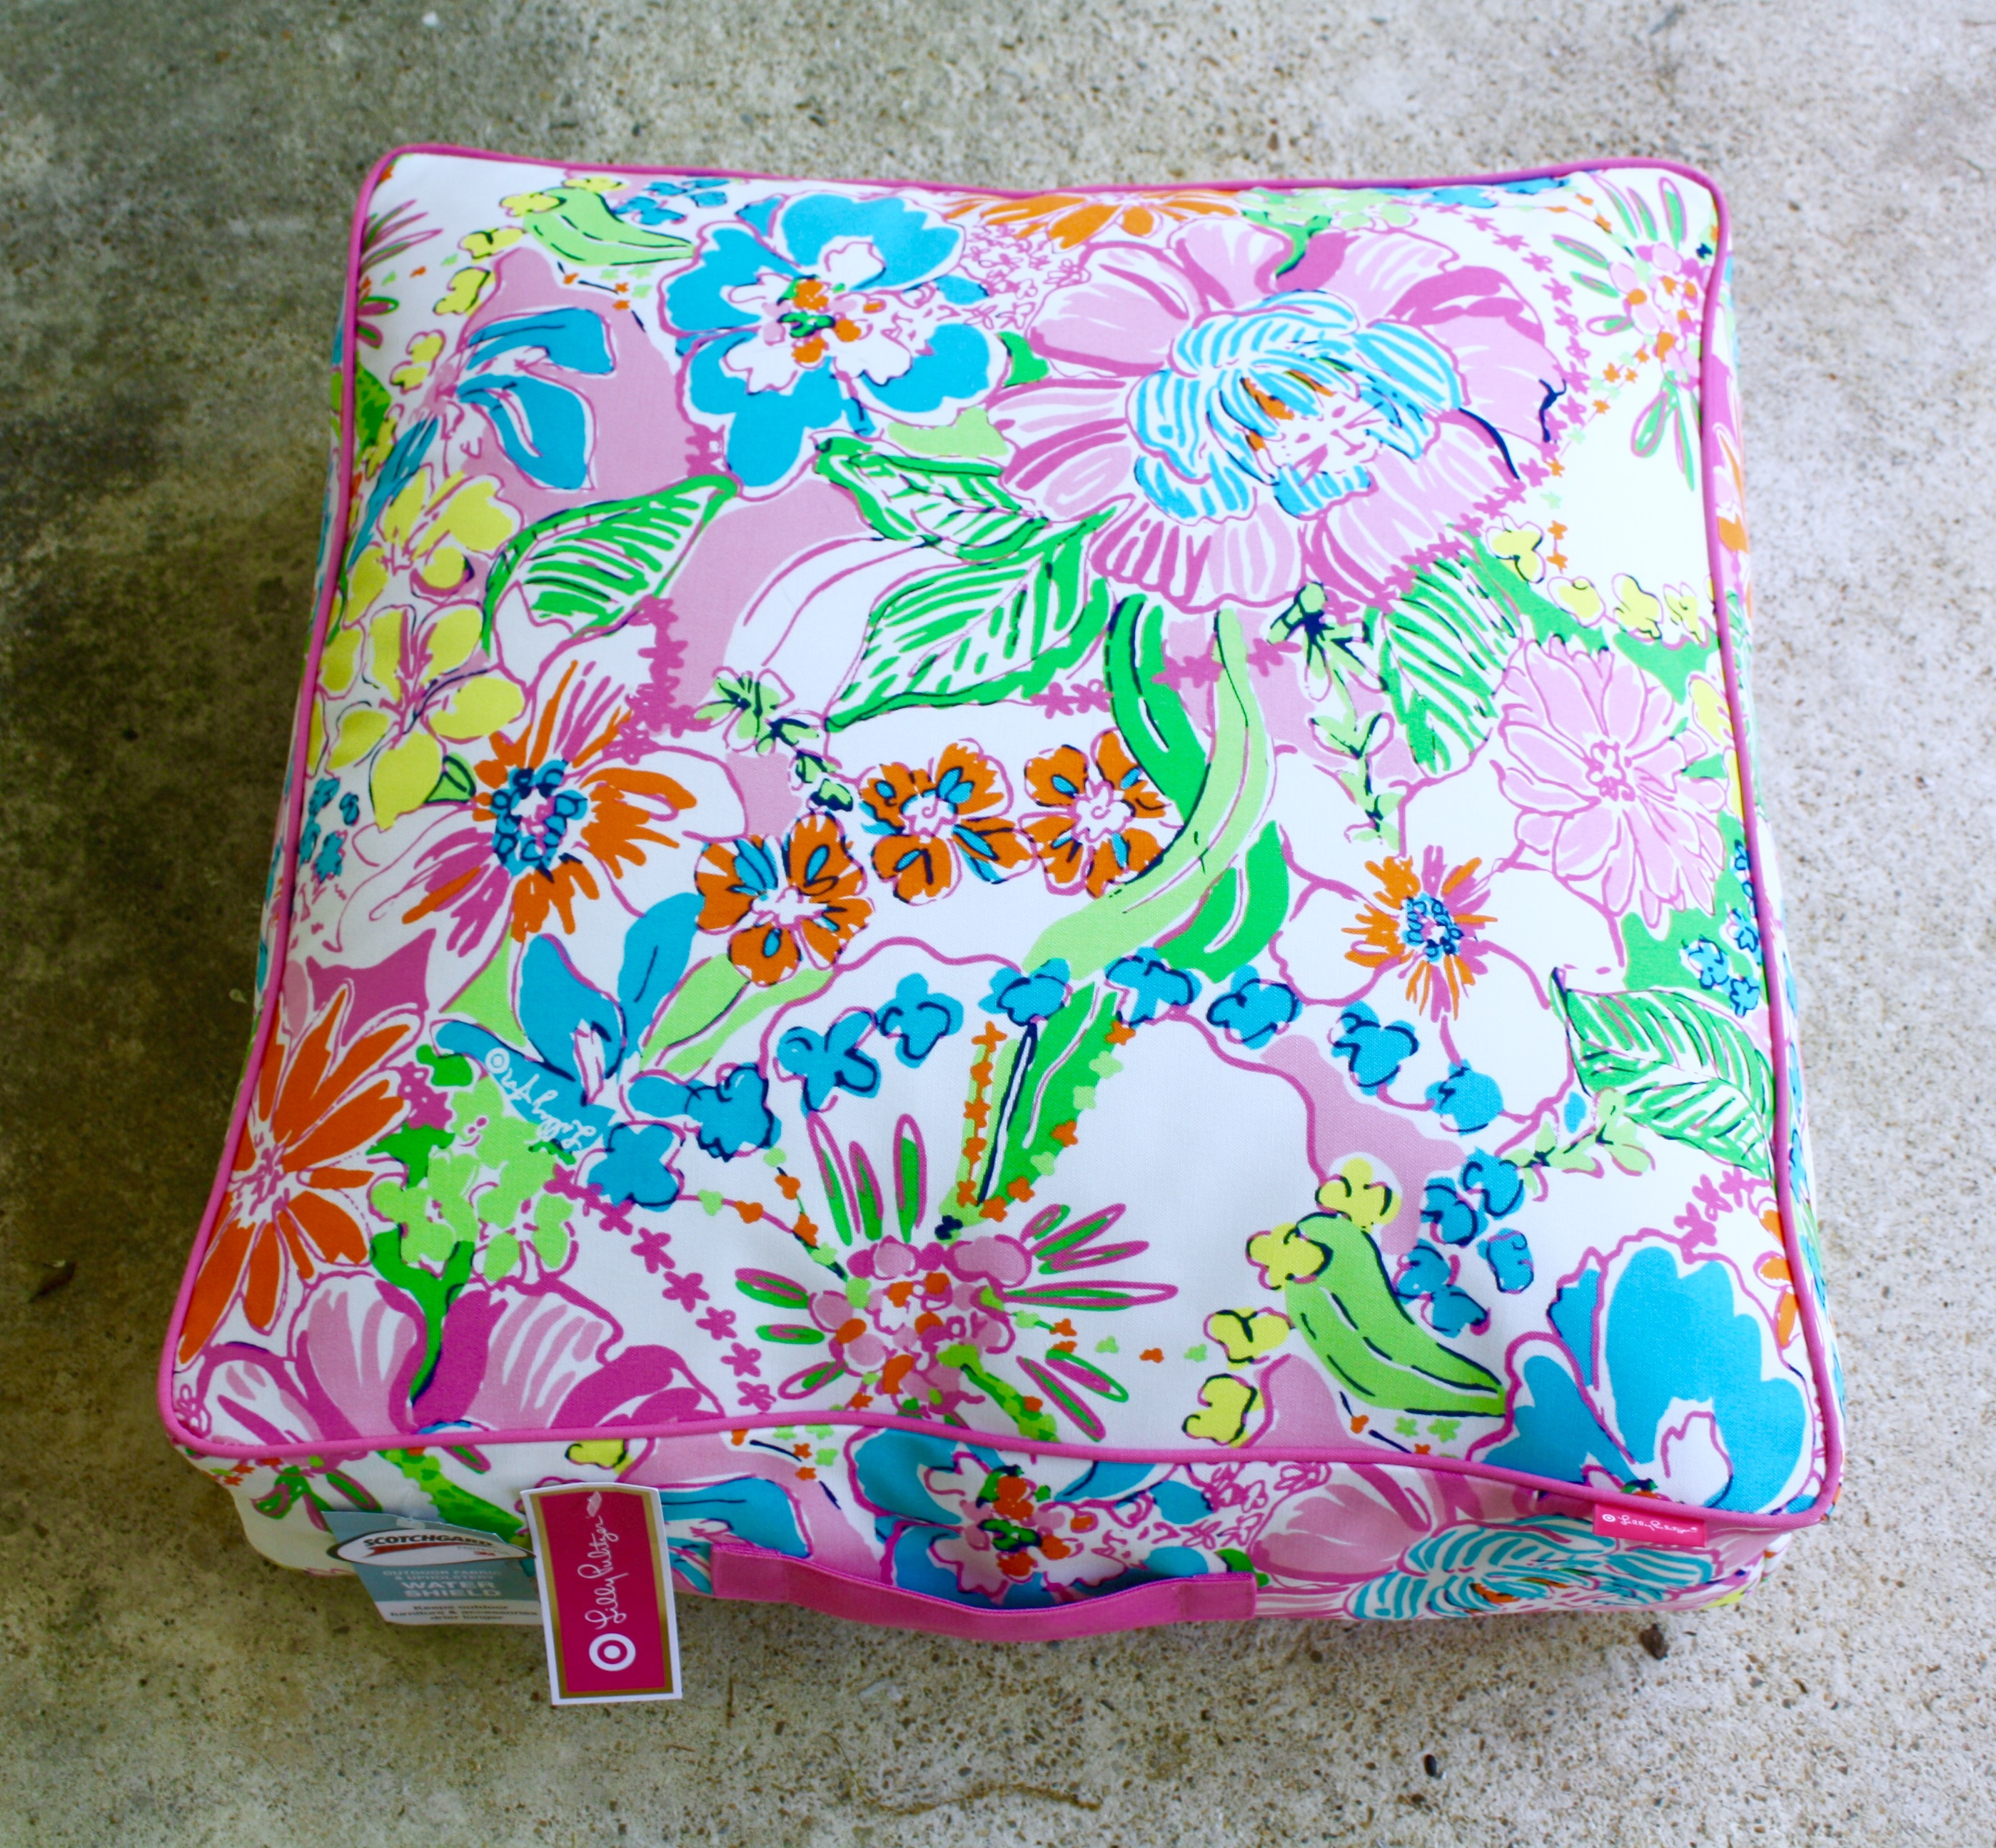 lilly pulitzer chair dutch design youtube for target haul  chic little honey